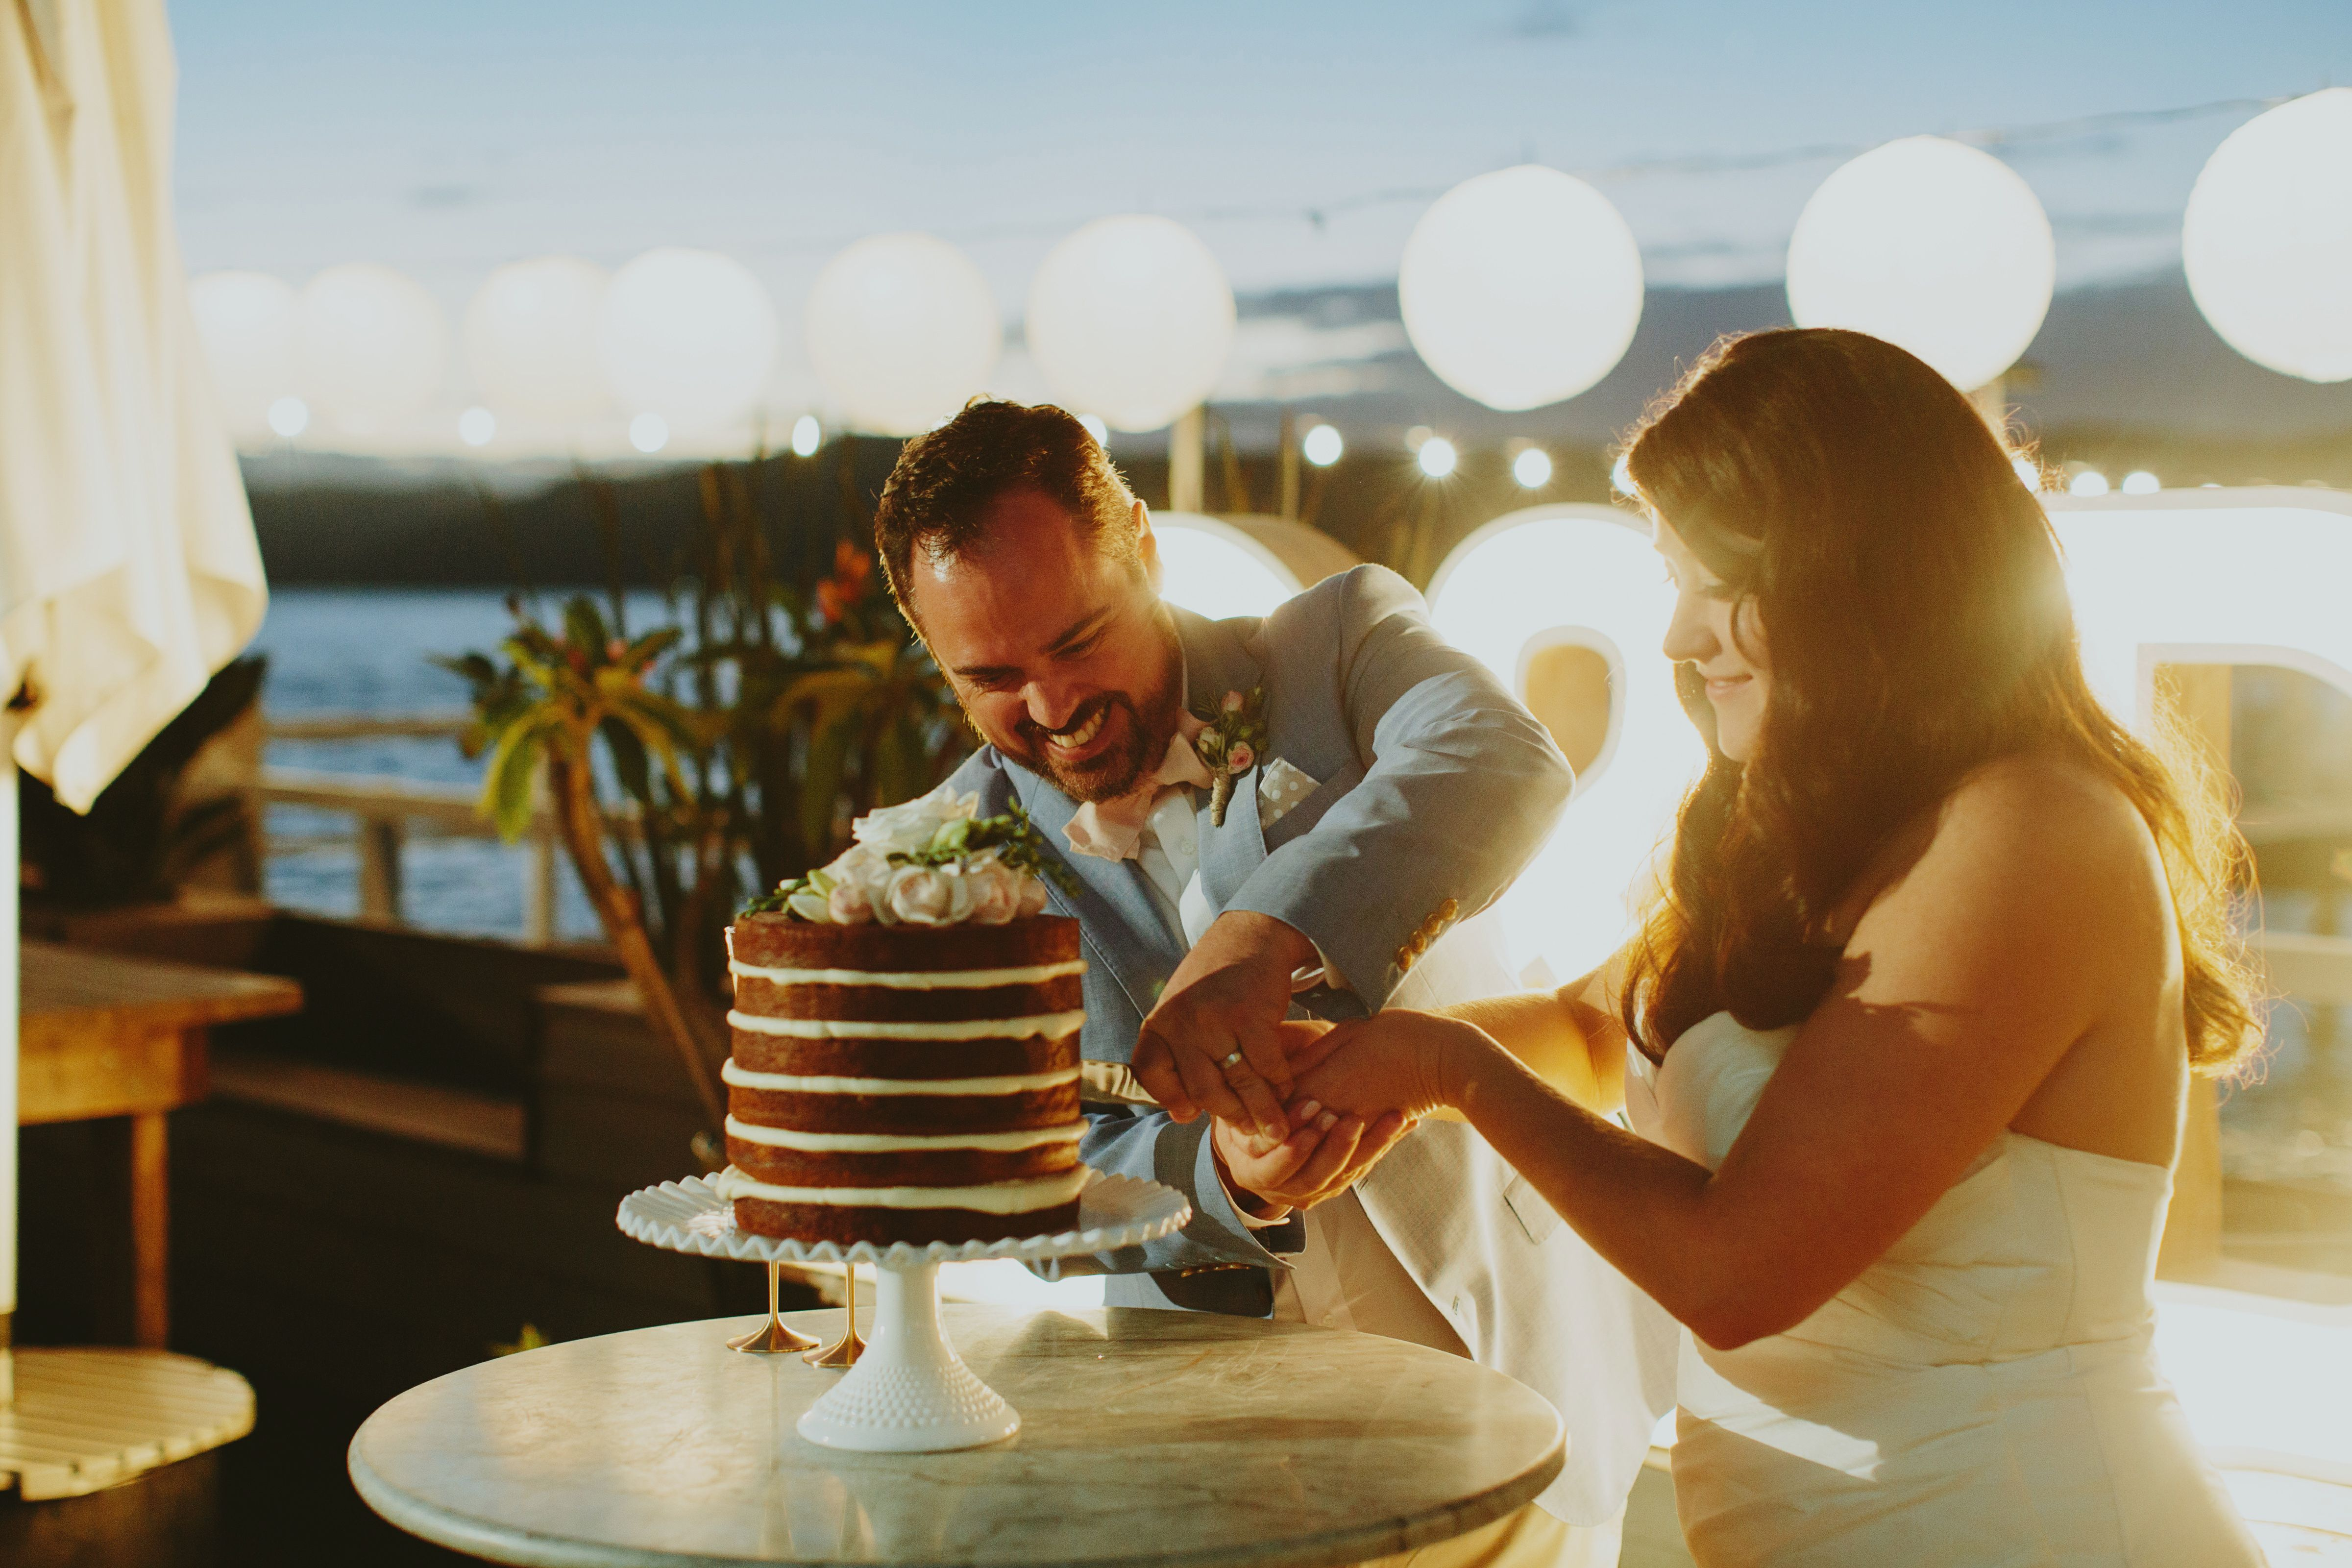 Danielle + Dan - Real wedding at The Boathouse Palm Beach. Photography by I Love Wednesdays